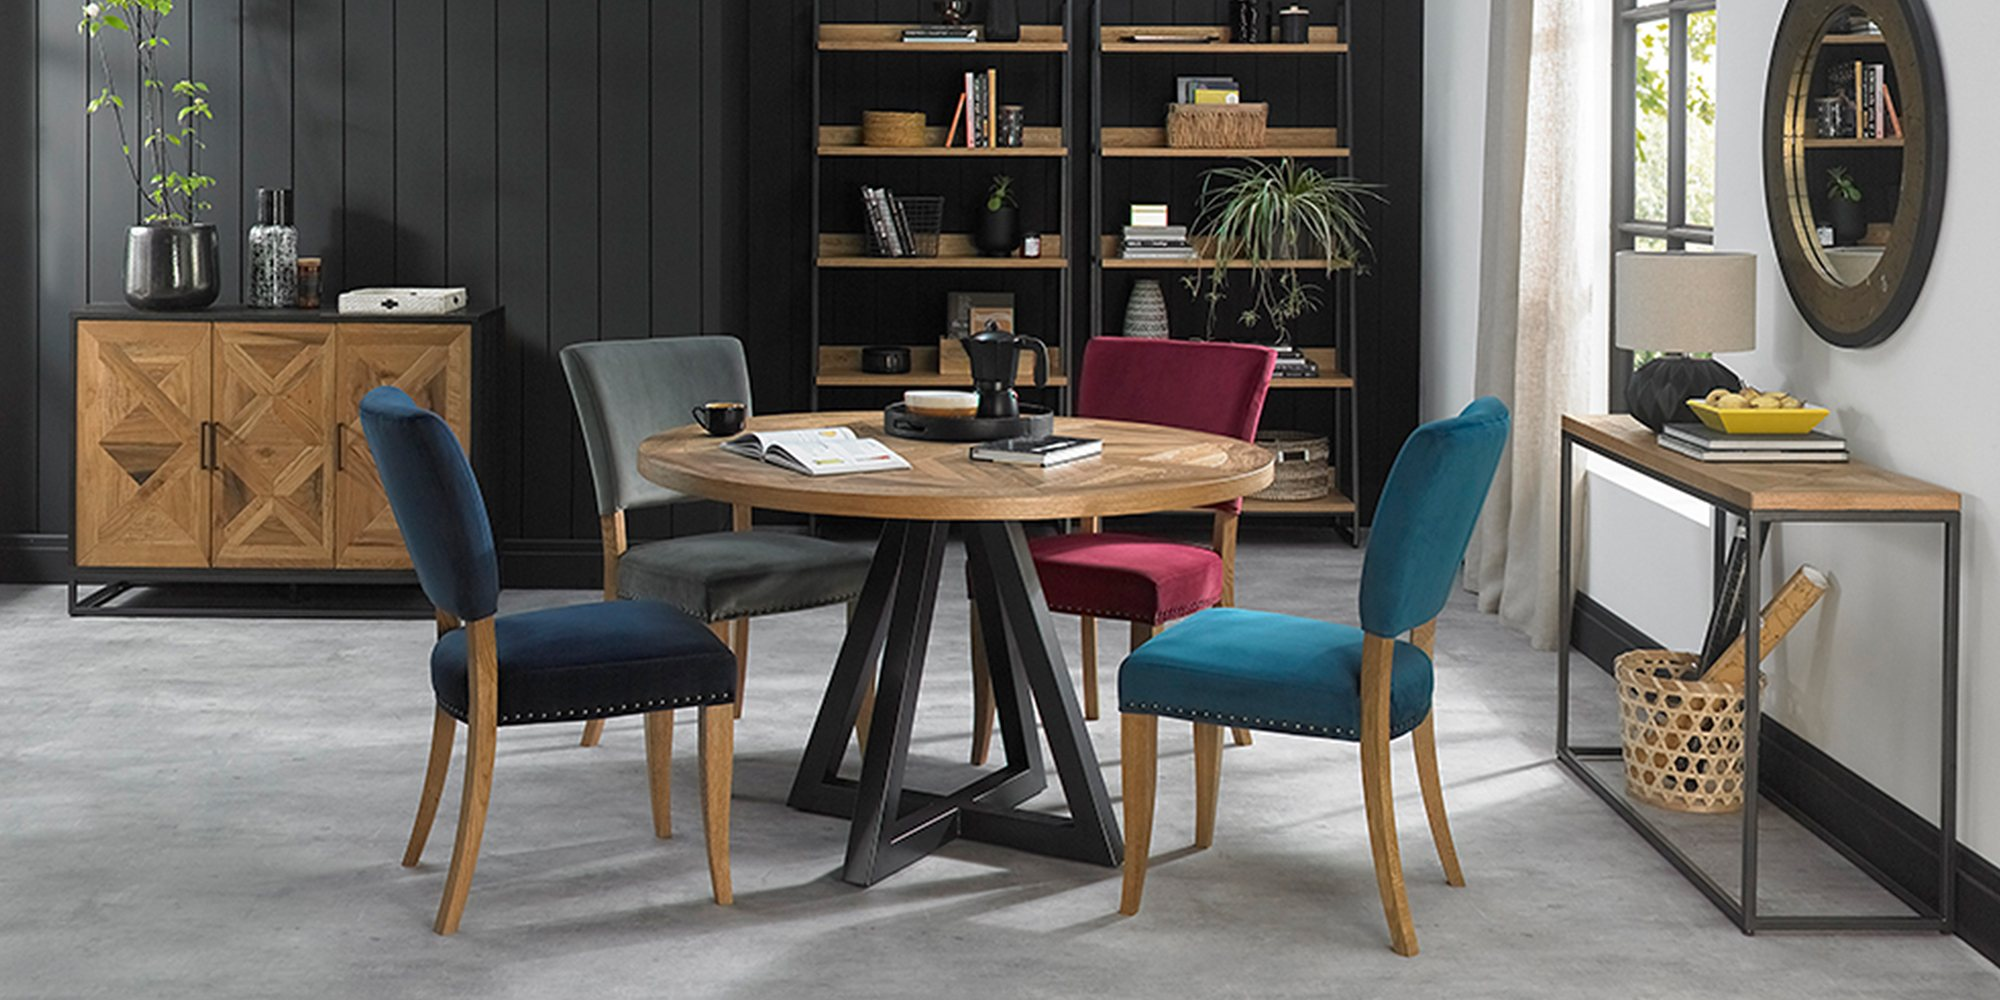 HELIX ROUND TABLE WITH HIGHLAND COLOUR CHAIRS